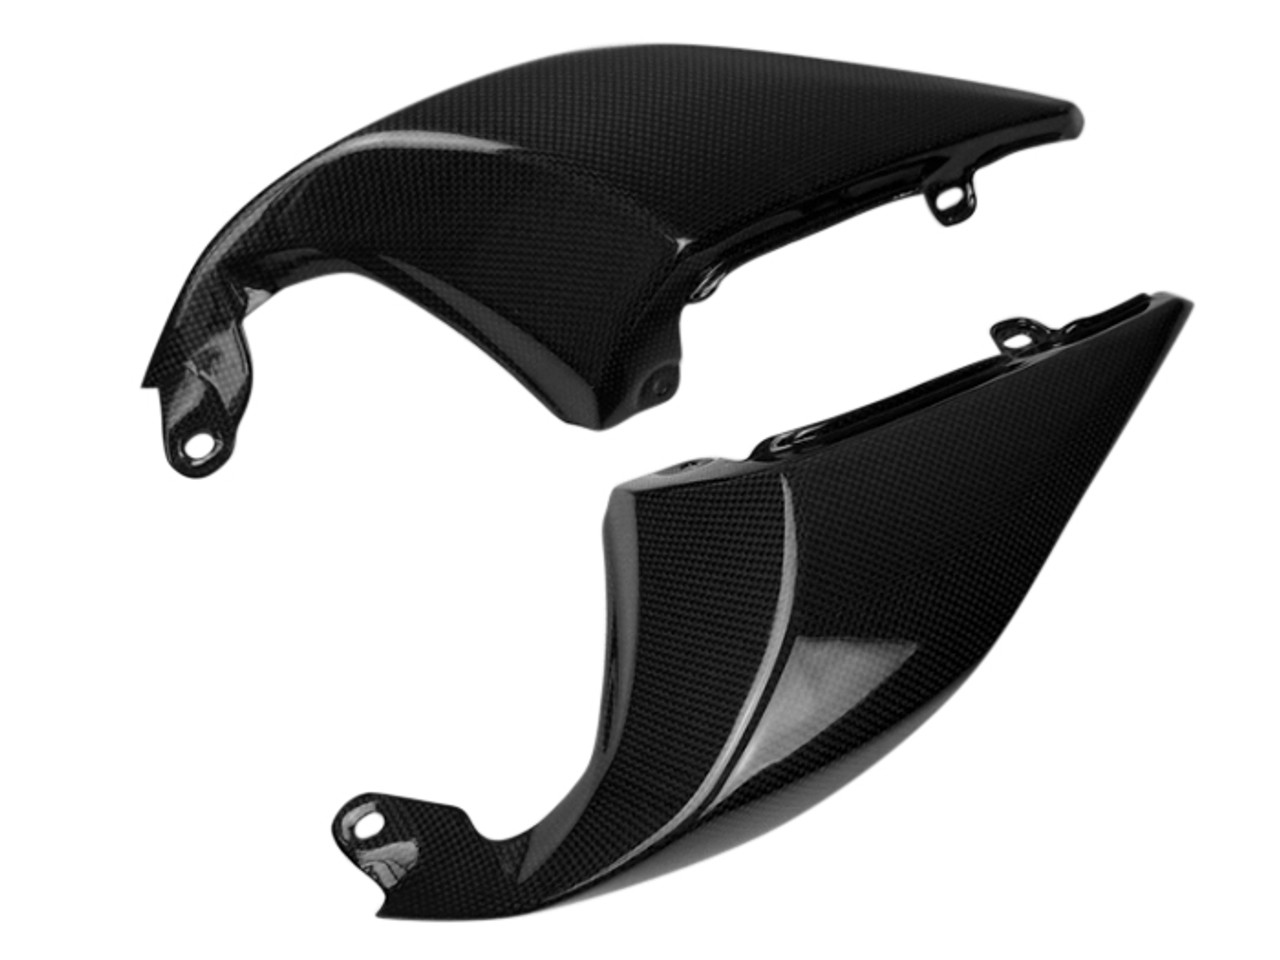 Tail Side Fairings in Glossy Plain Weave Carbon Fiber for Triumph Speed Triple 1050R 2016+